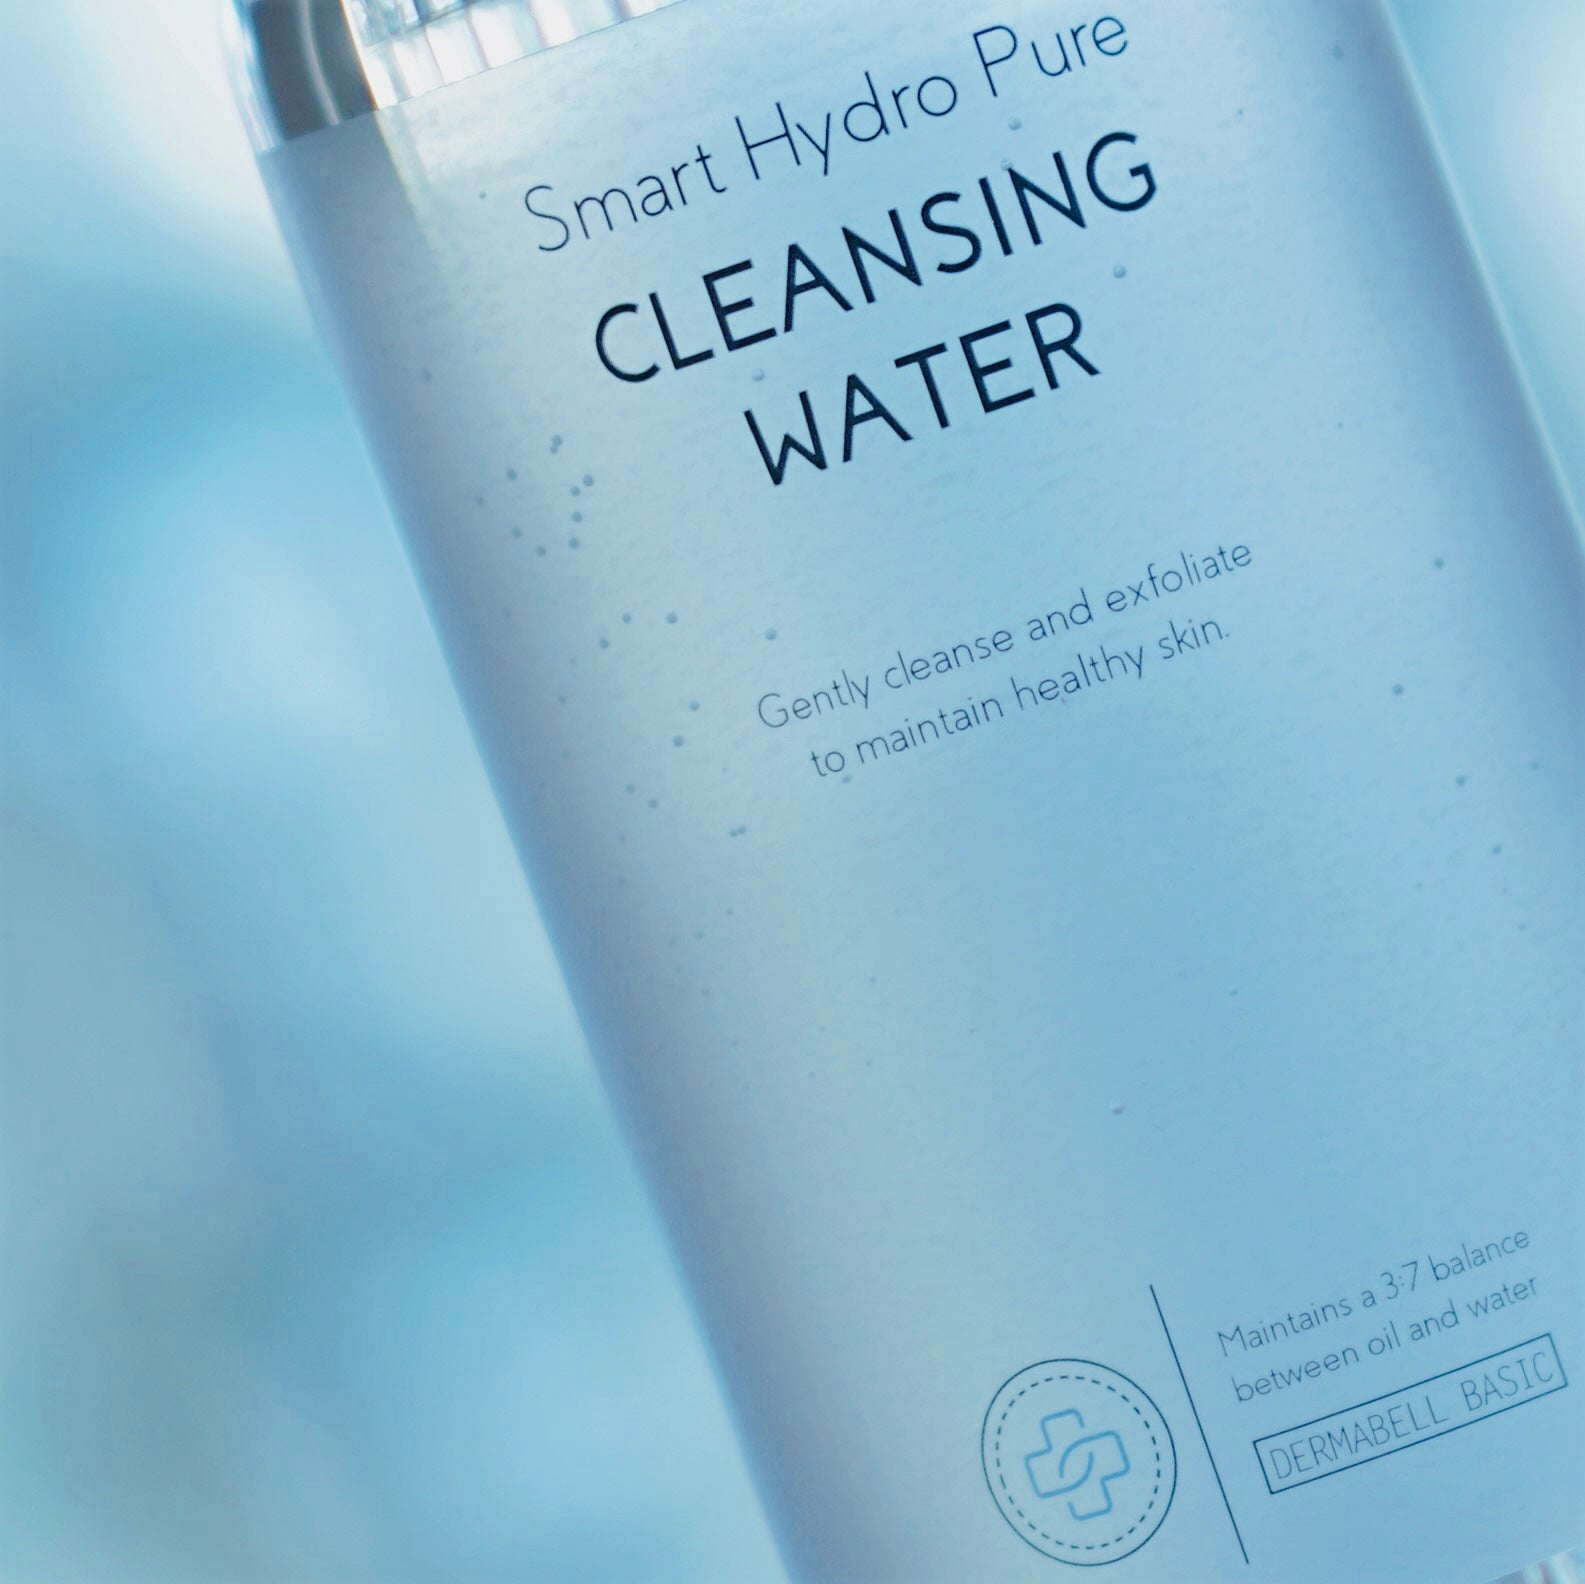 Smart Hydro Pure Cleansing Water Cleansing Water by Dermabell Basic